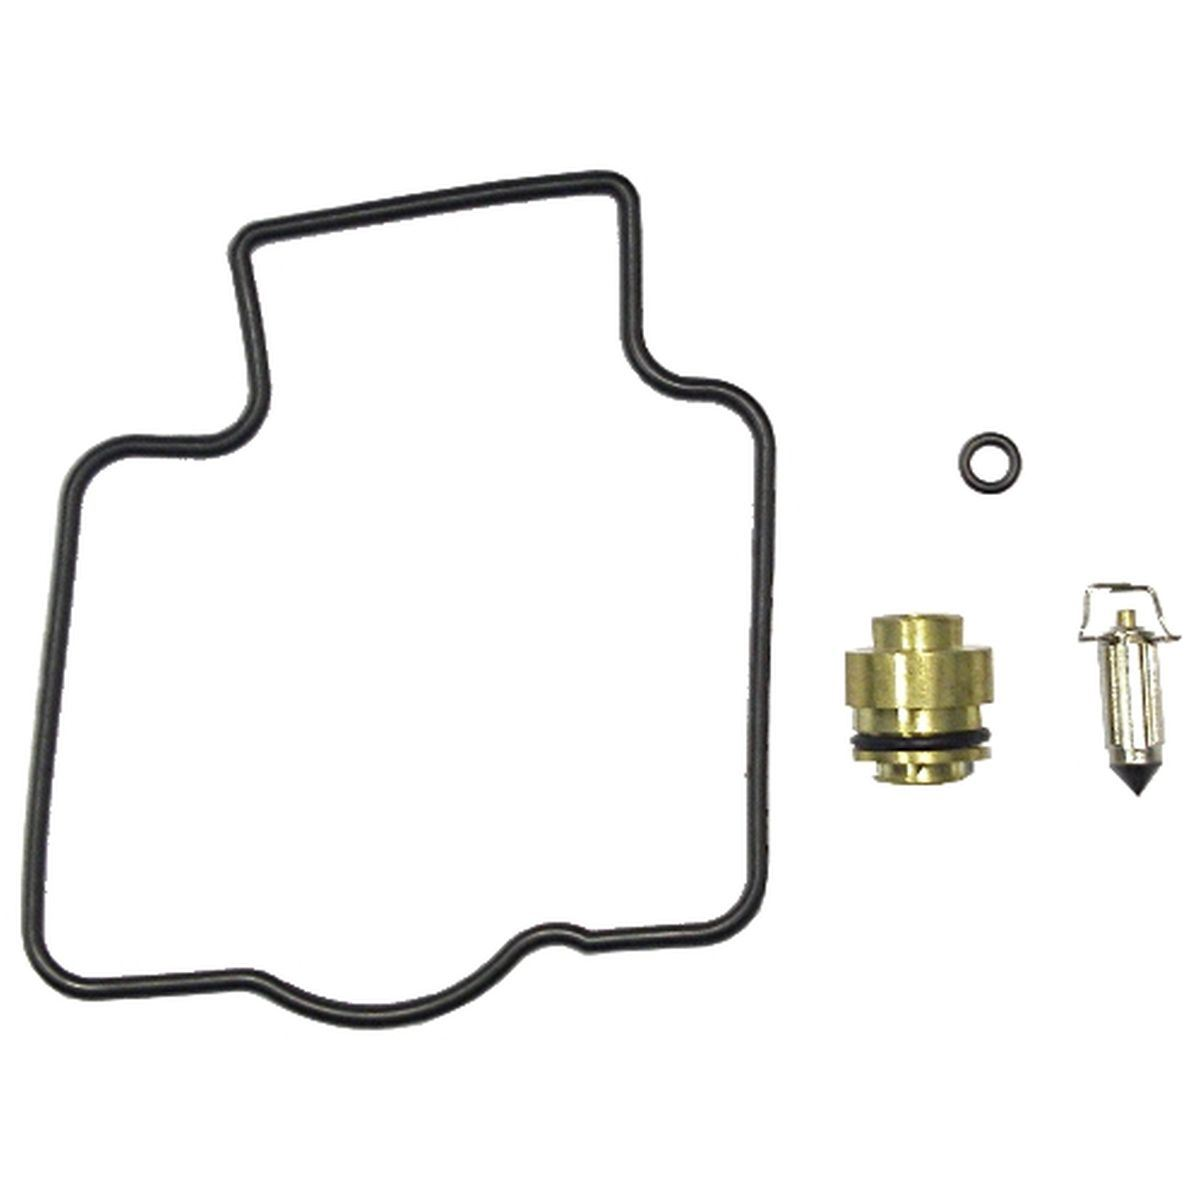 AW Motorcycle Parts. Carburettor Repair Kit Kawasaki ZX7R